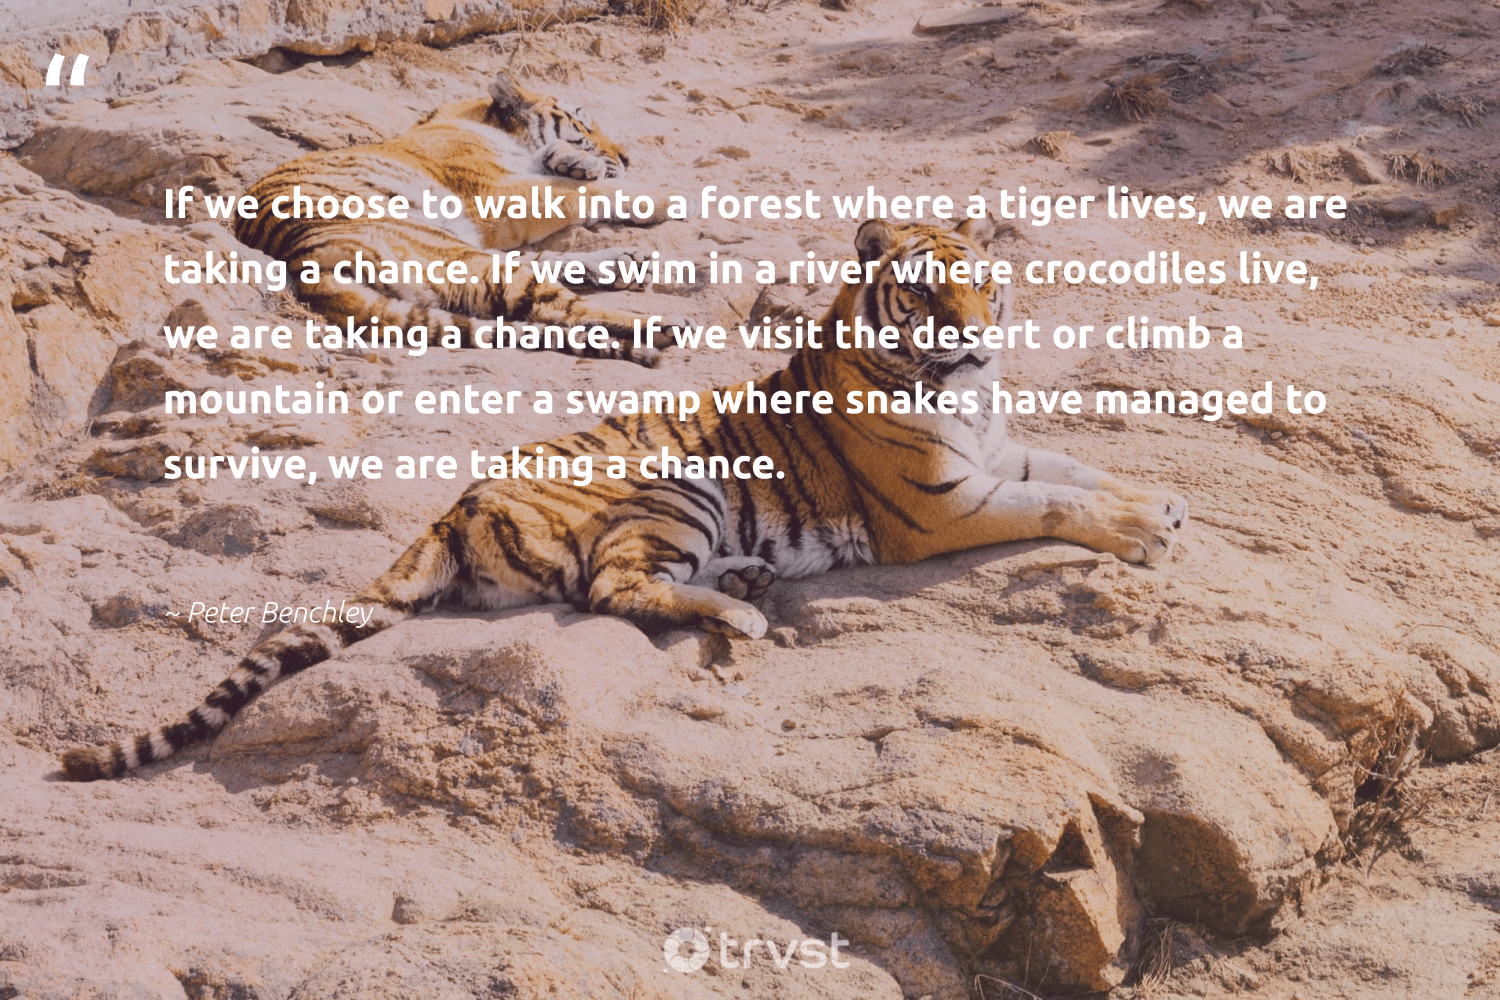 """If we choose to walk into a forest where a tiger lives, we are taking a chance. If we swim in a river where crocodiles live, we are taking a chance. If we visit the desert or climb a mountain or enter a swamp where snakes have managed to survive, we are taking a chance.""  - Peter Benchley #trvst #quotes #river #mountain #forest #tiger #treeplanting #biodiversity #green #dosomething #trees #ourplanetdaily"